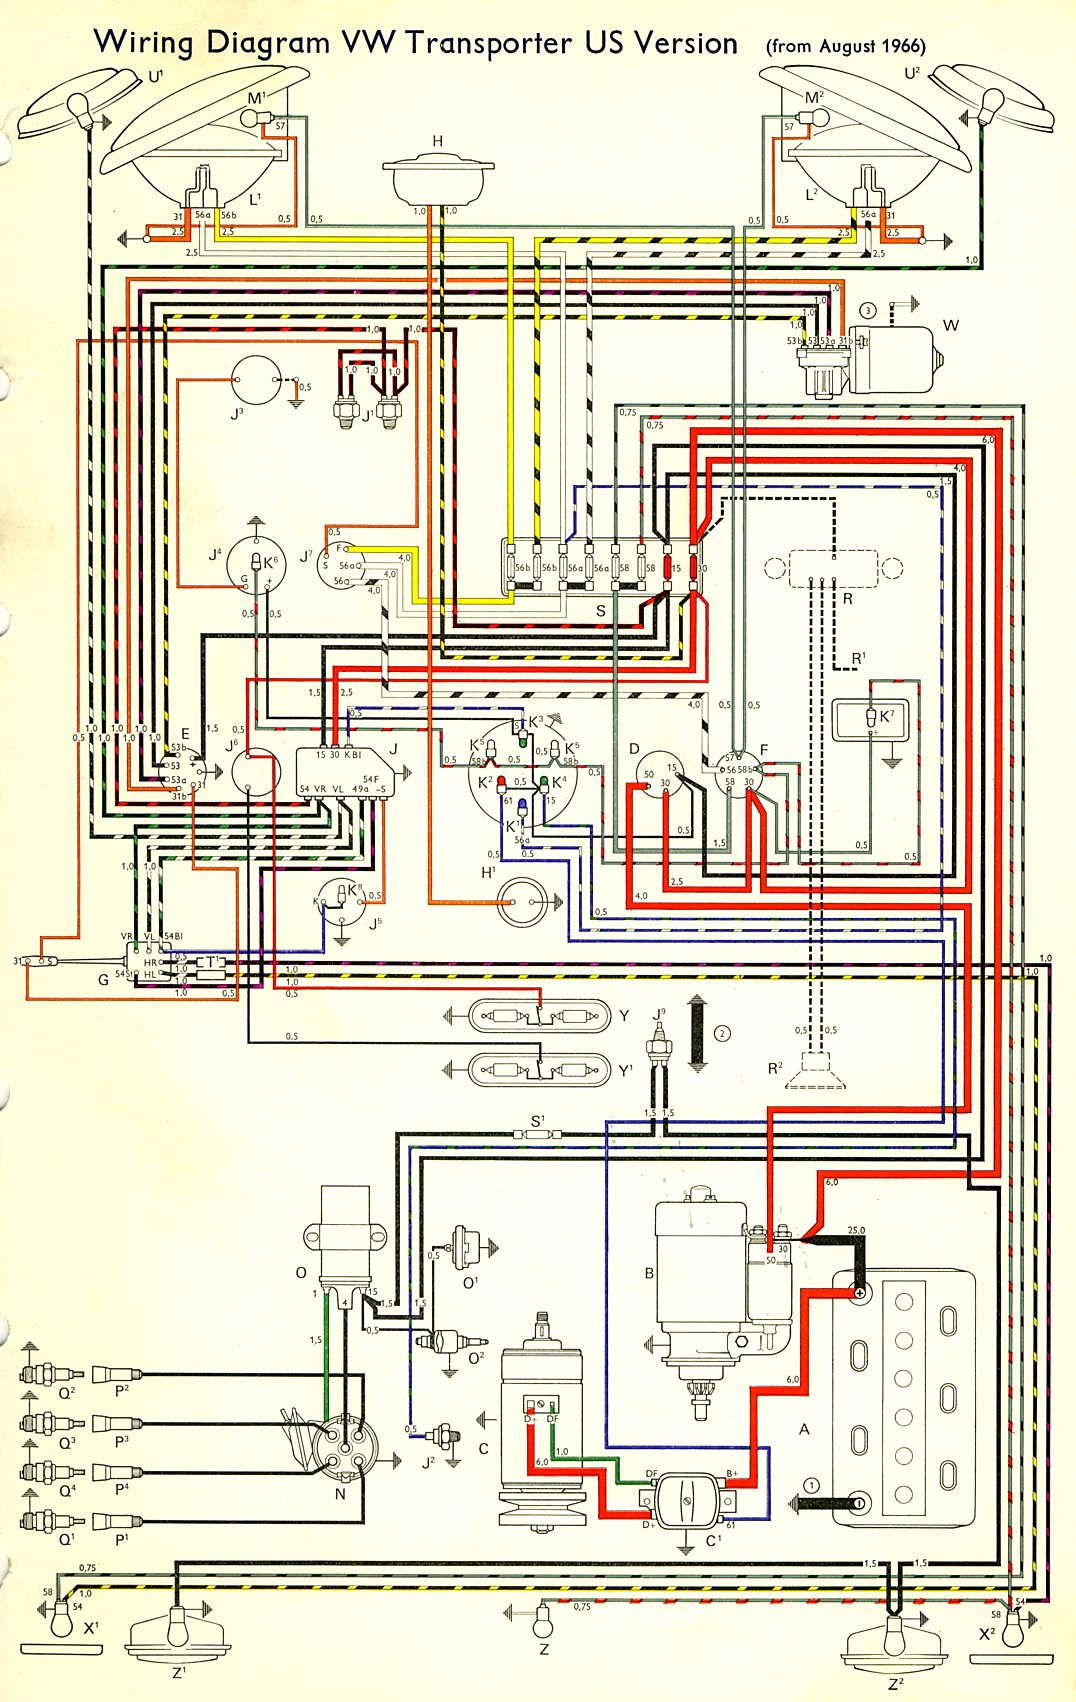 wire diagram 1979 vw van thesamba.com :: type 2 wiring diagrams 1979 vw bus wiring diagrams